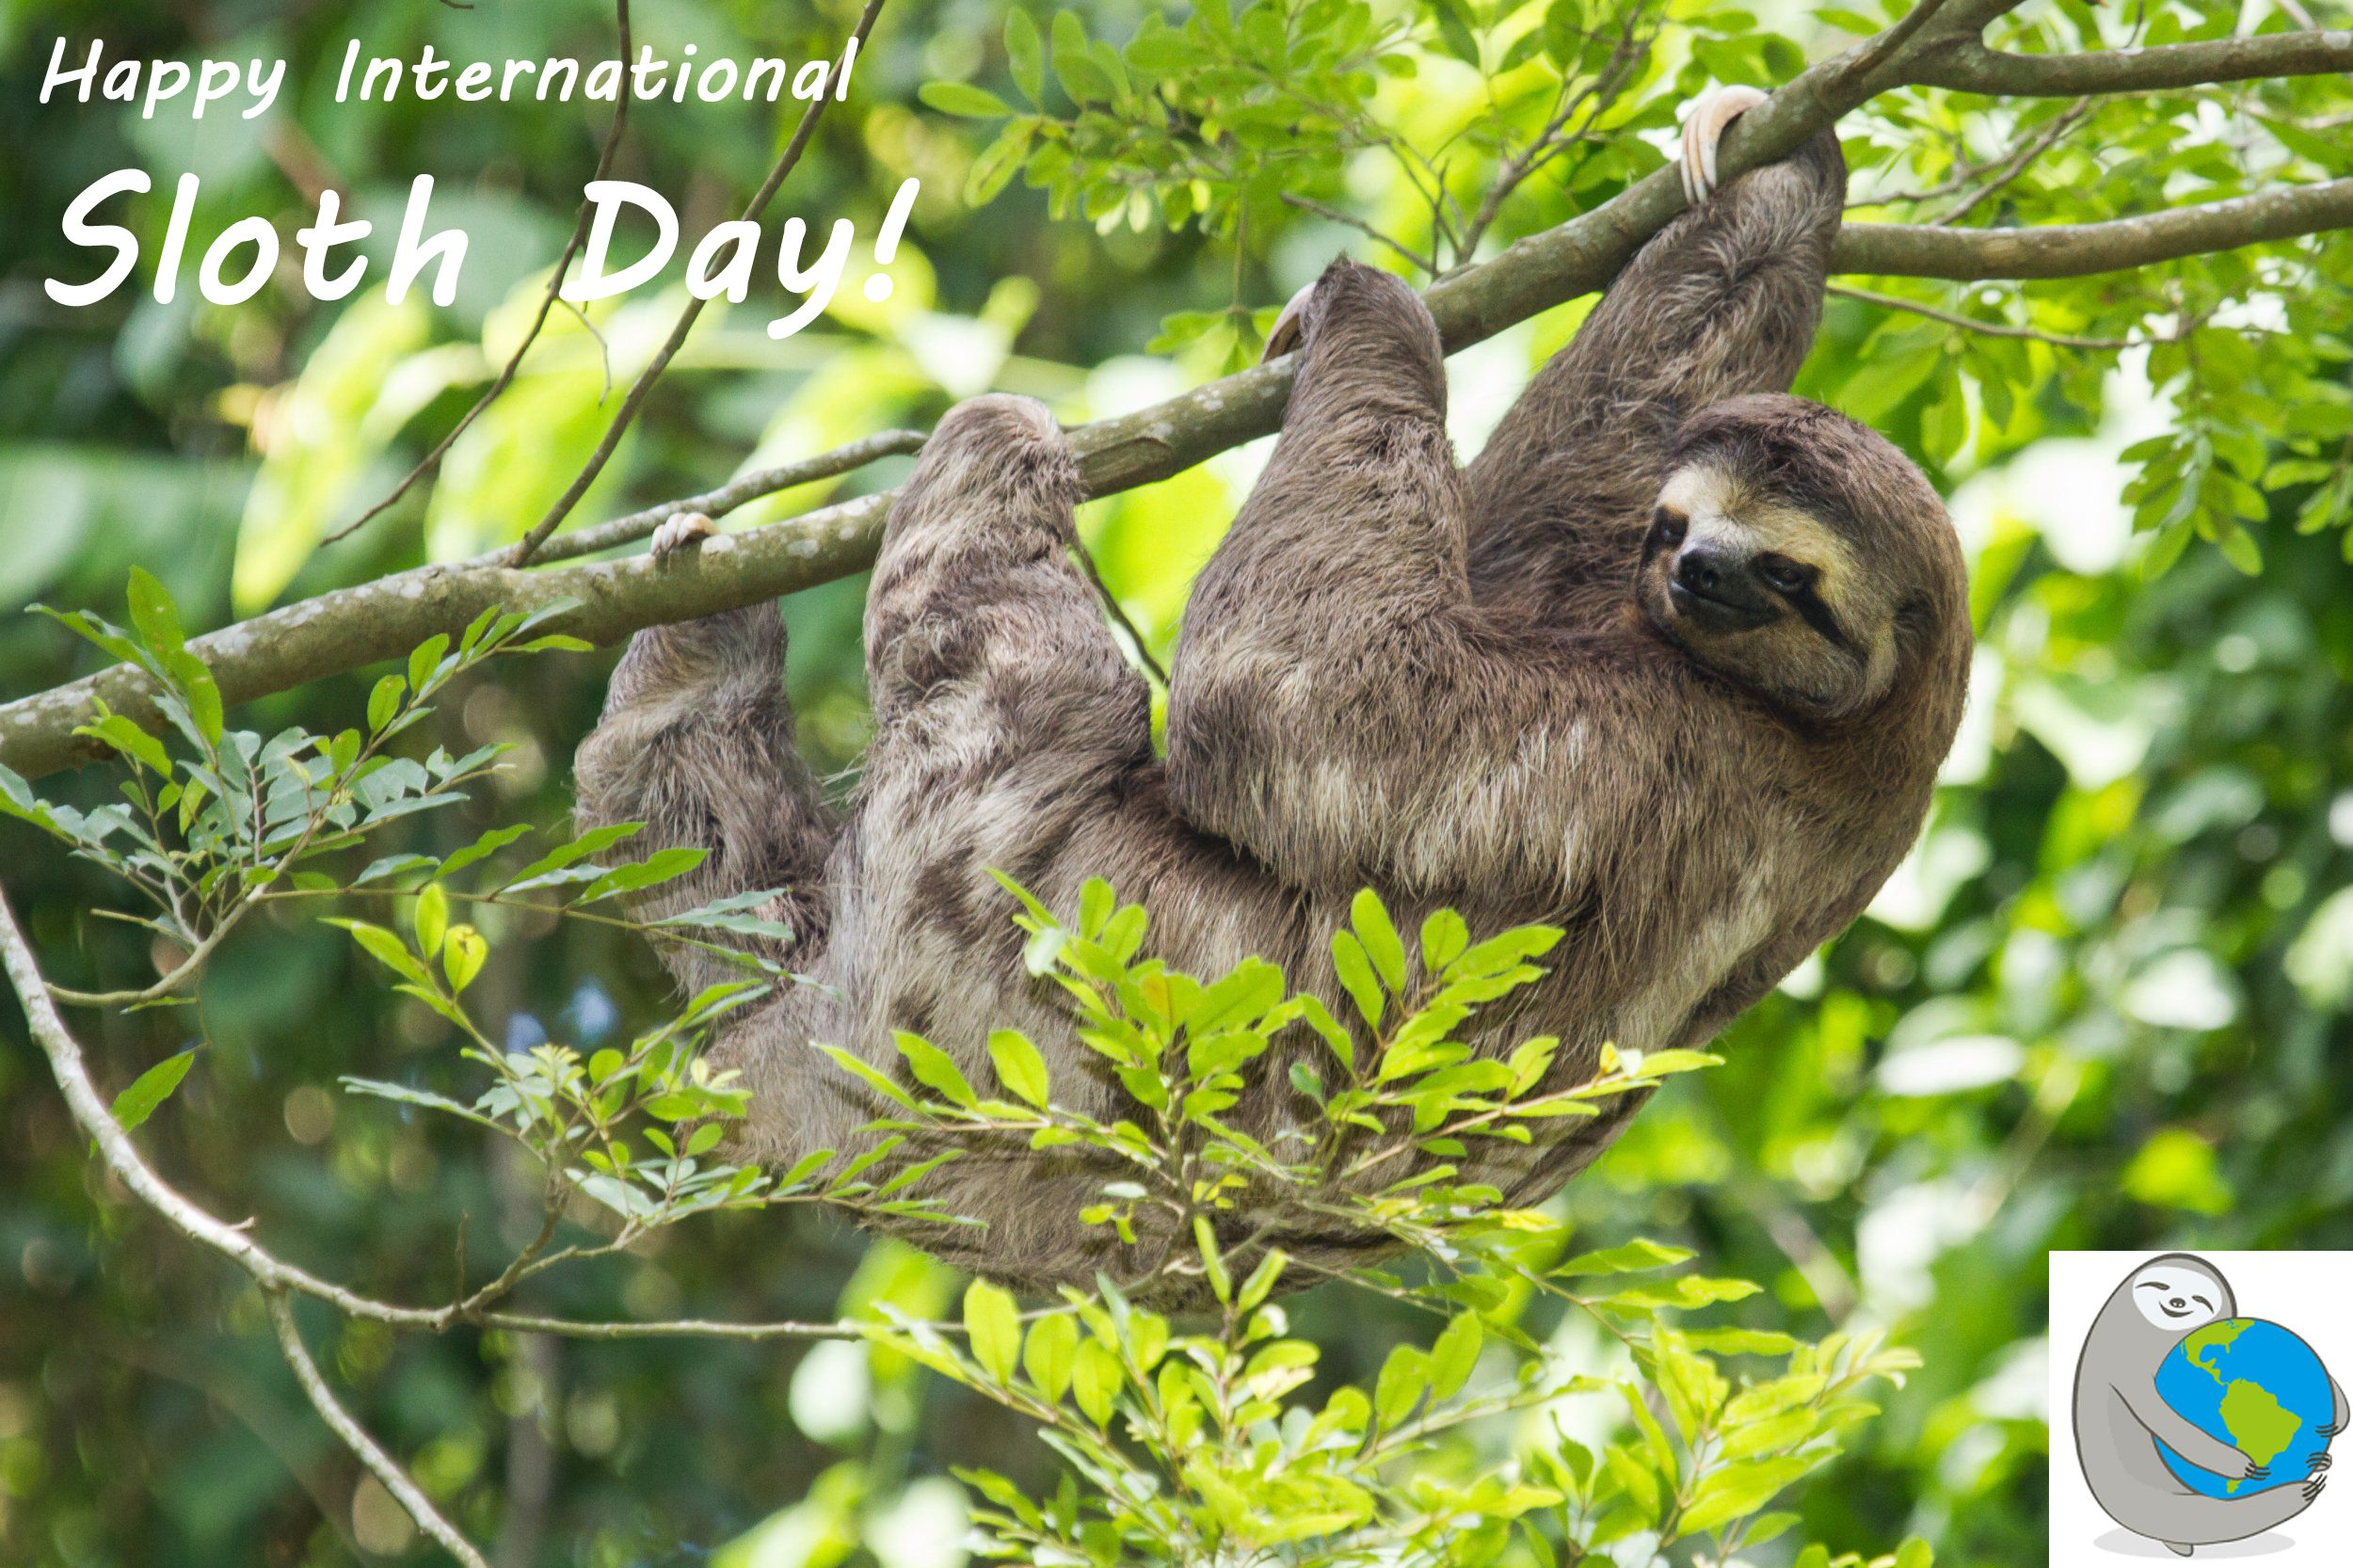 Oct. 20, 2016 International Sloth Day was created by